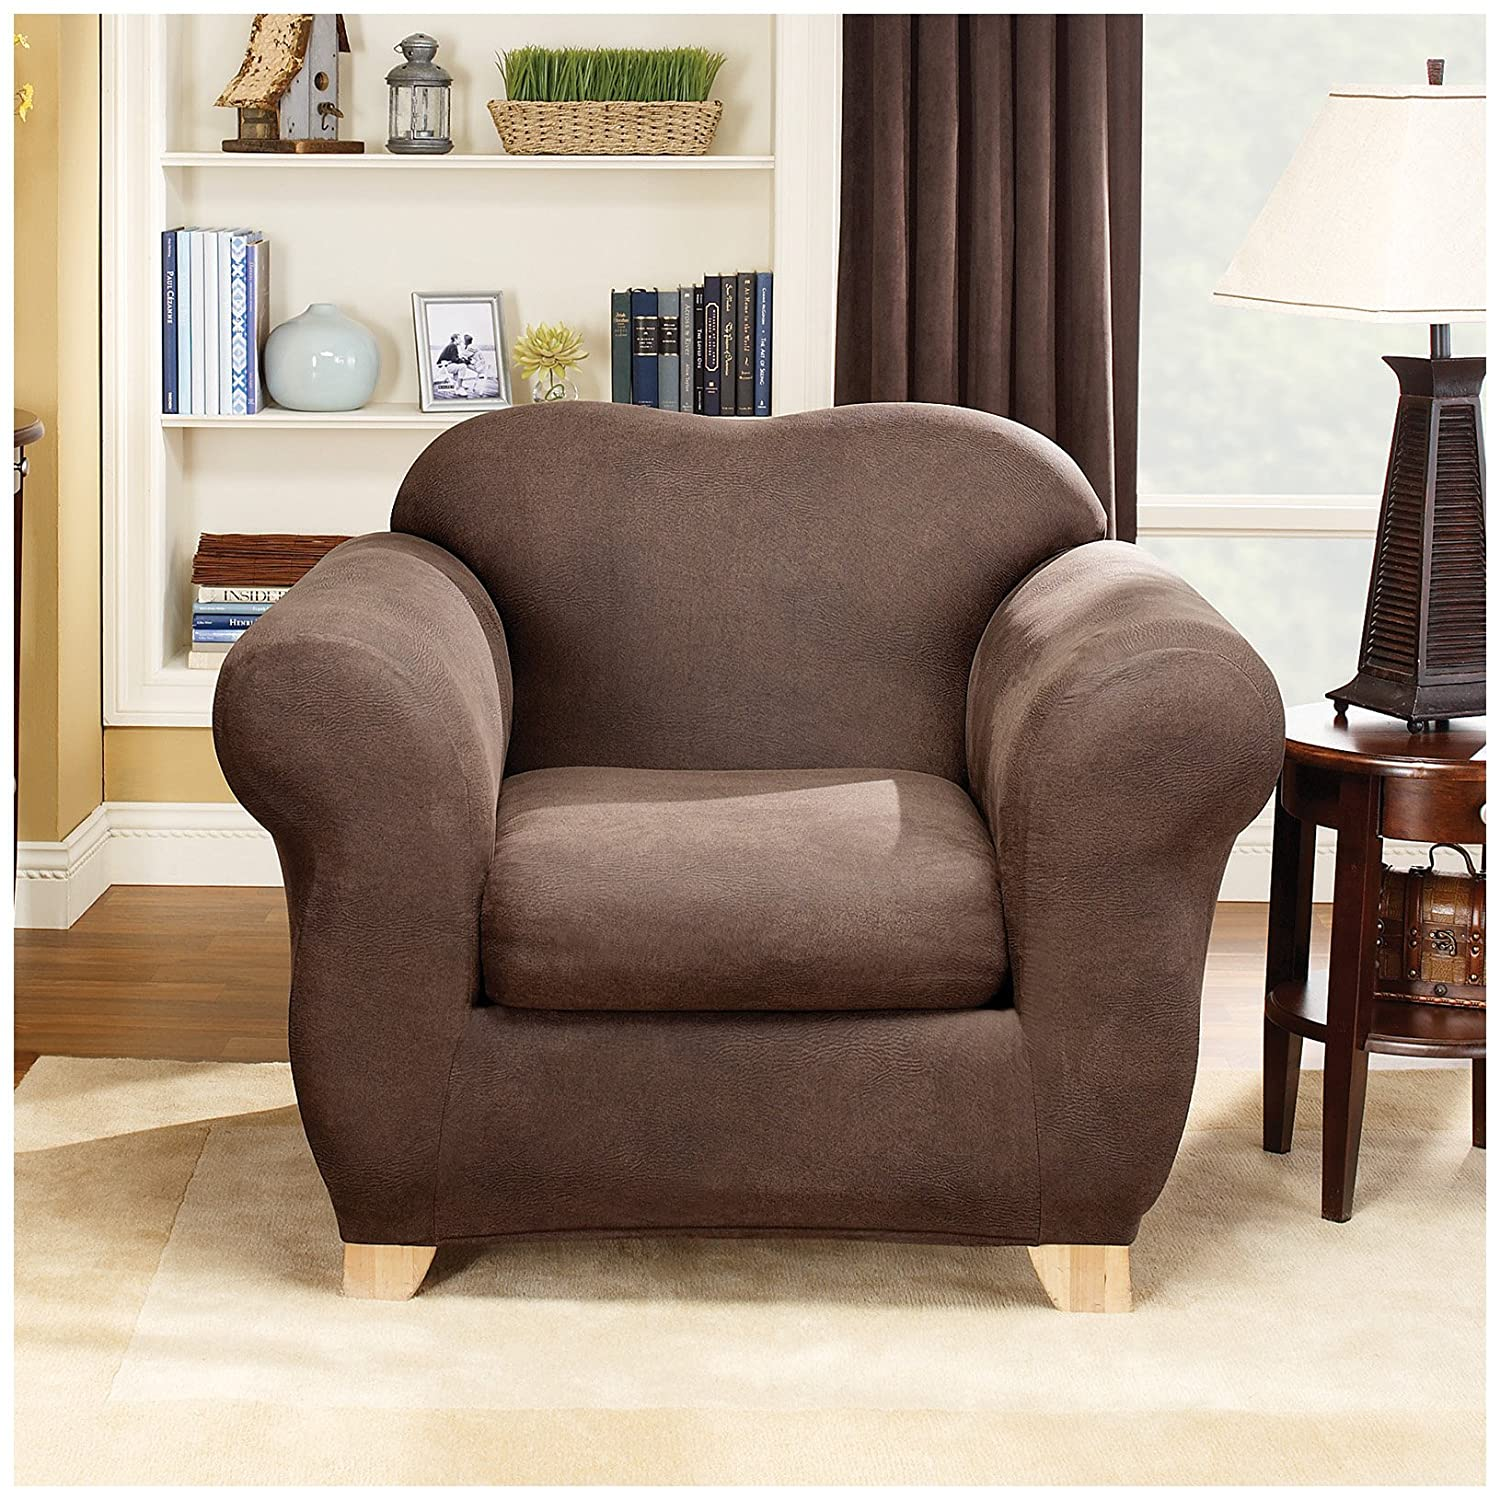 Awesome Amazon.com: Sure Fit Stretch Leather 2 Piece   Sofa Slipcover   Brown  (SF37336): Home U0026 Kitchen